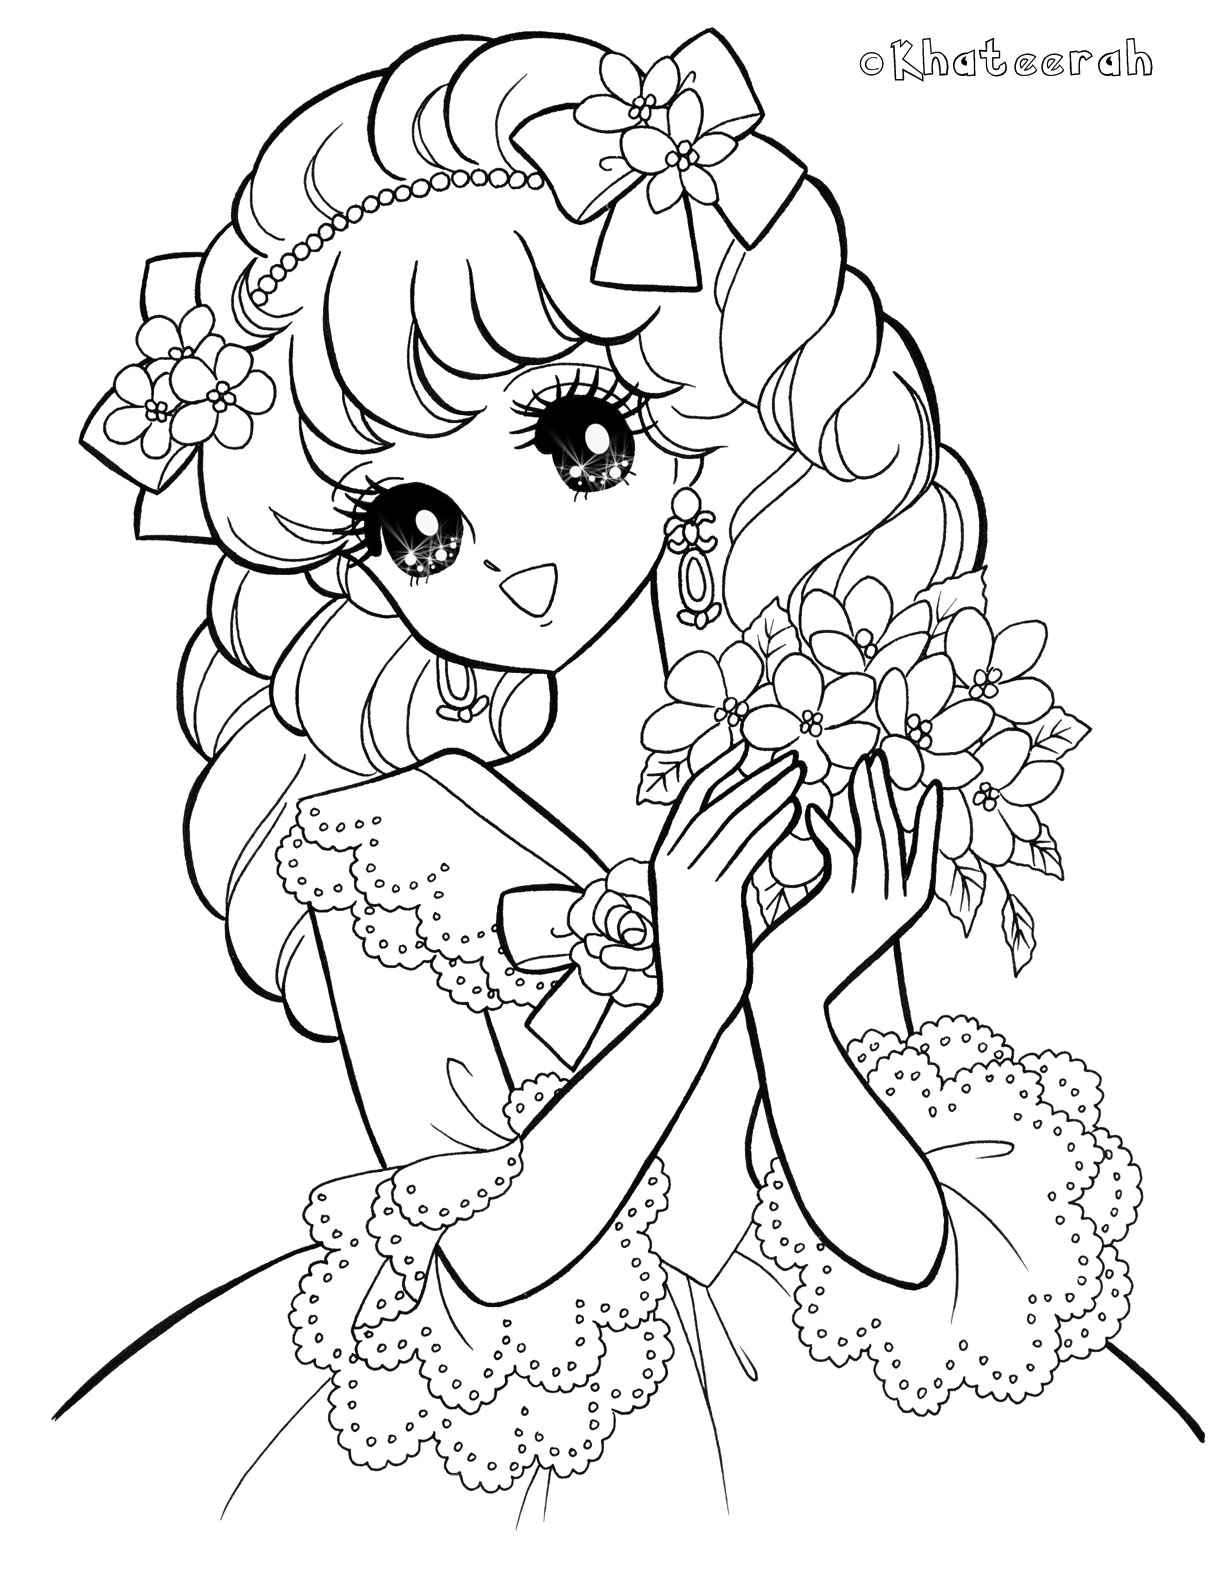 Showthread on Candy Land Coloring Page